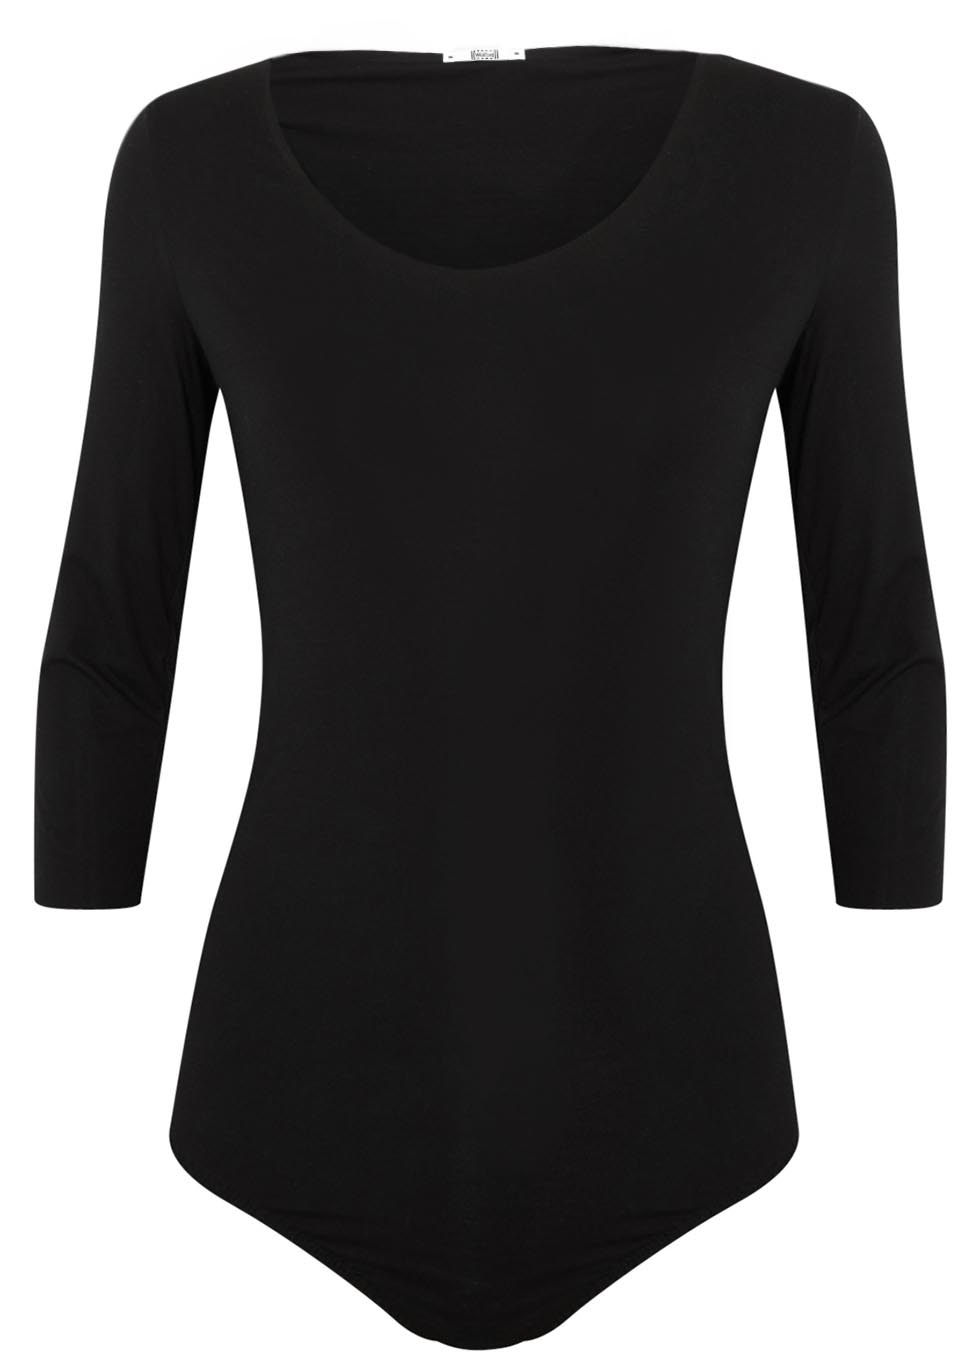 Pure black jersey bodysuit - Wolford